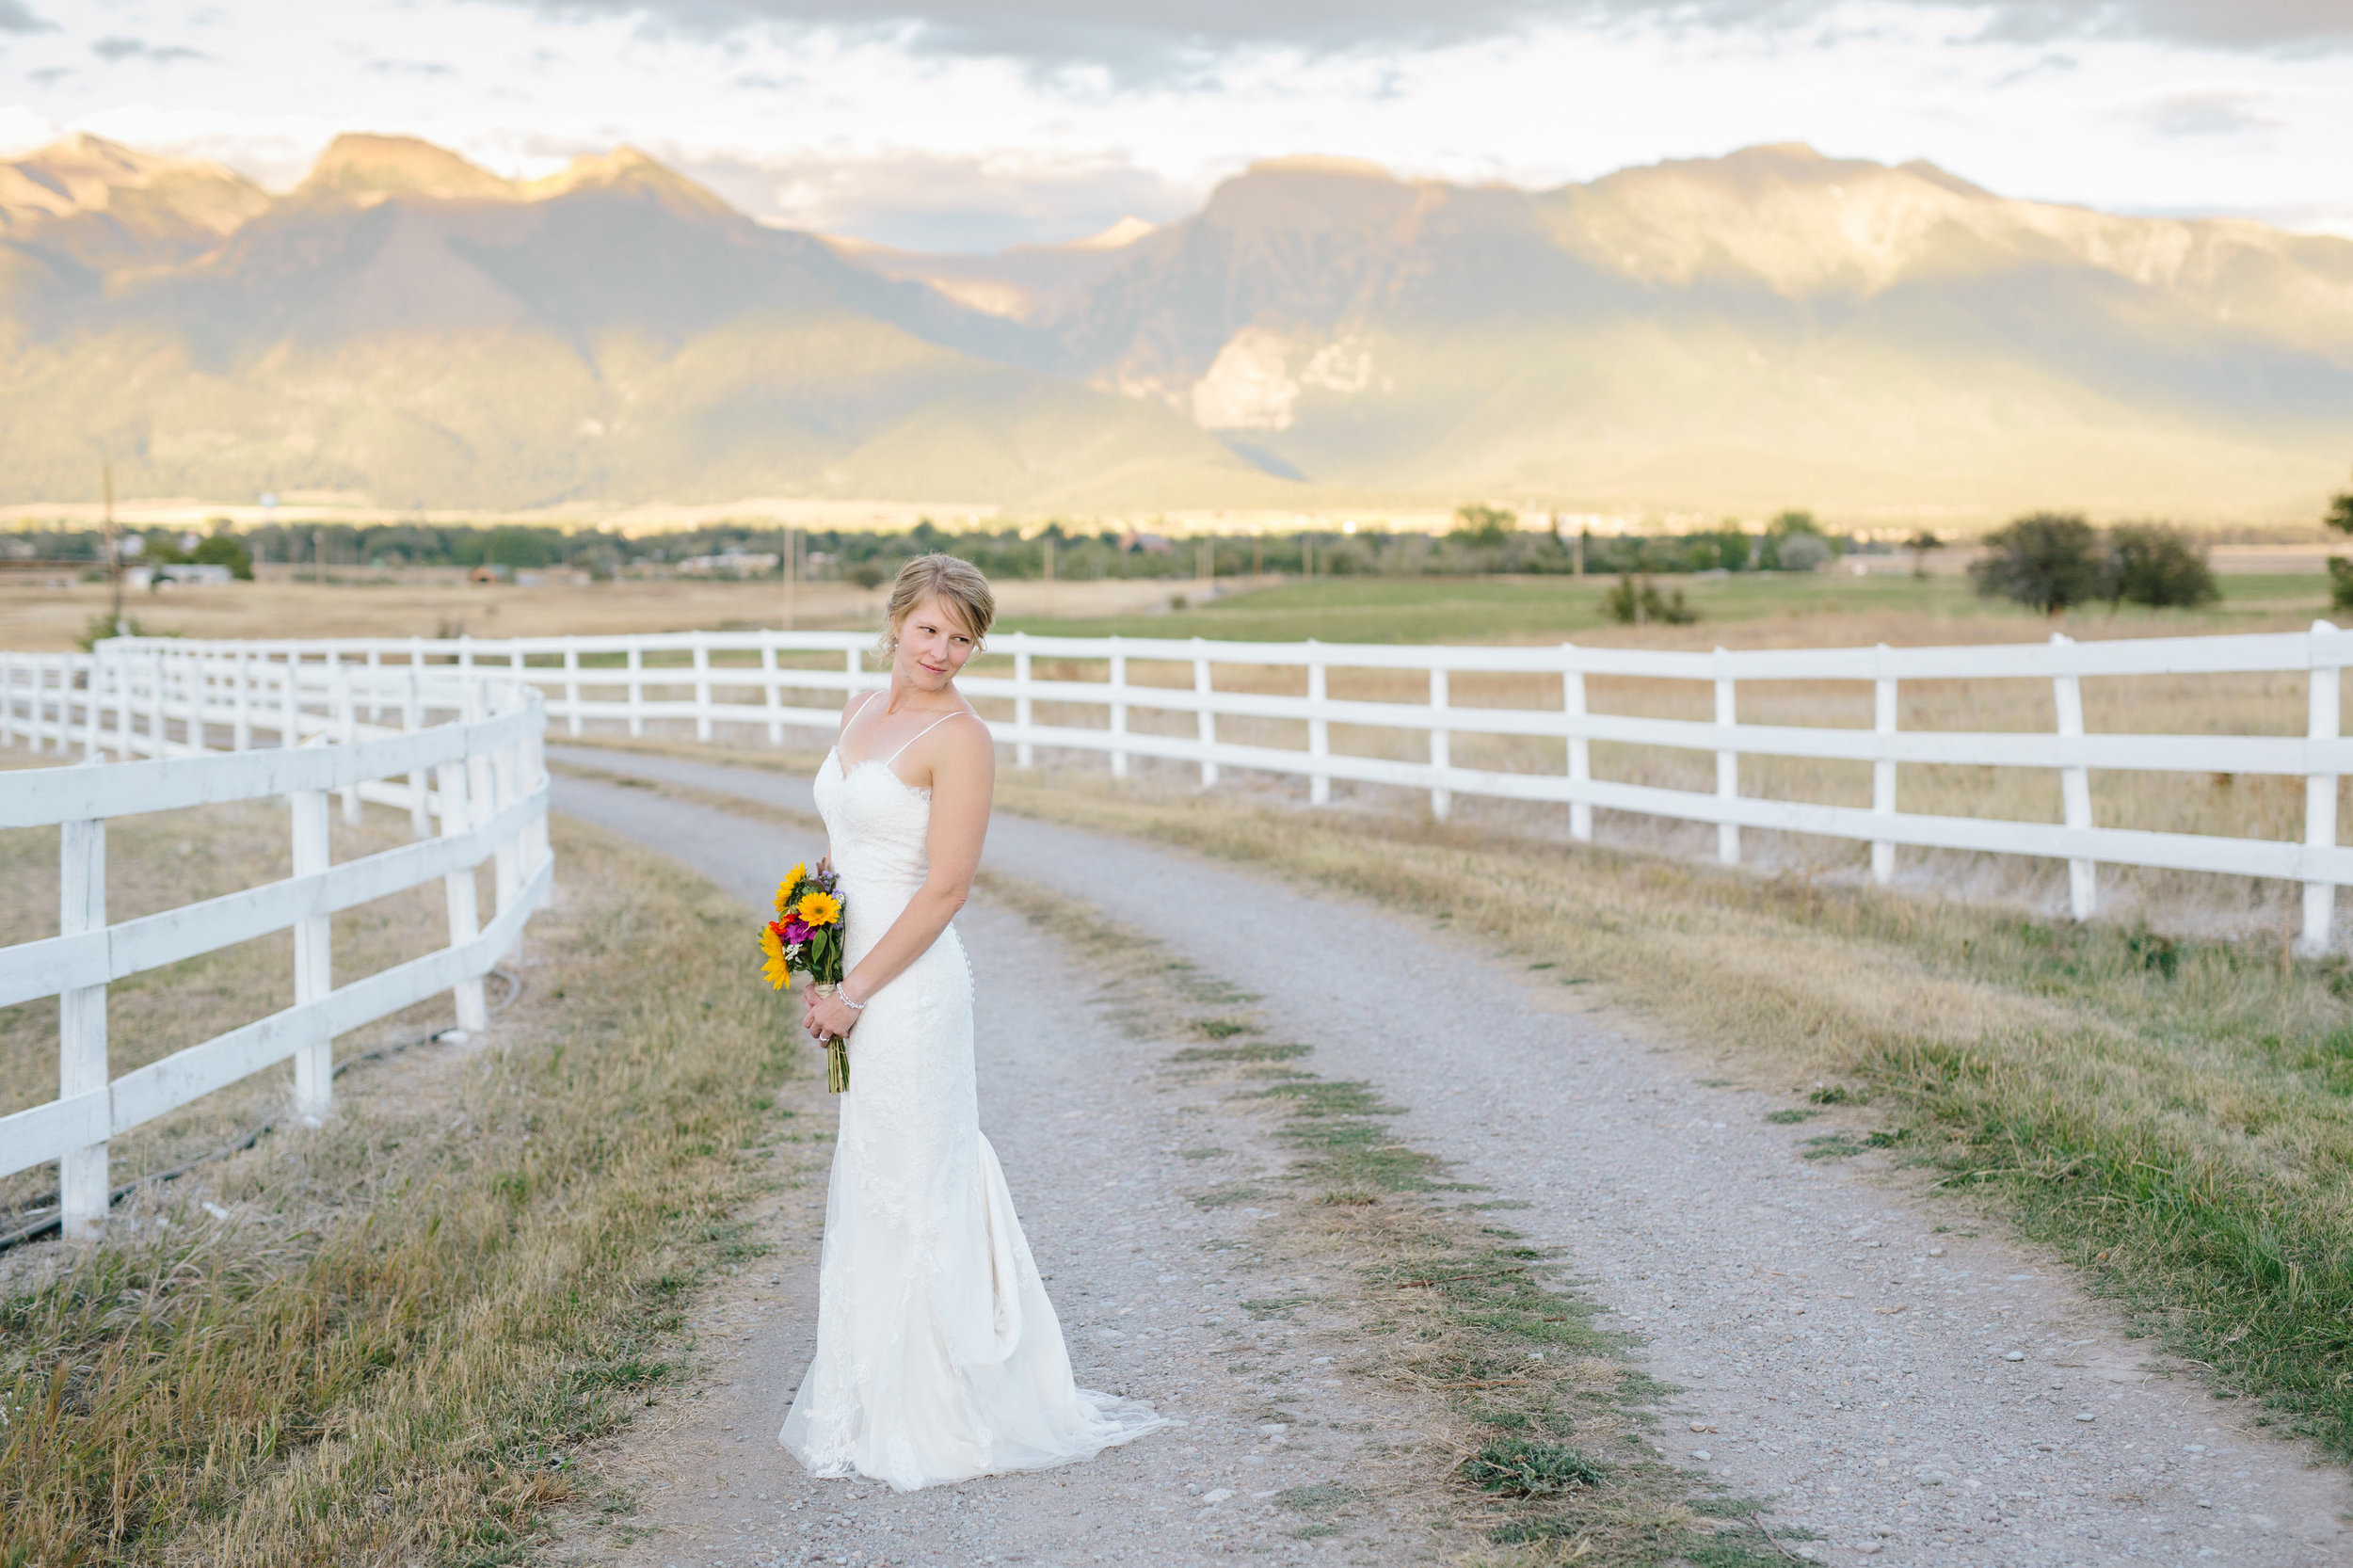 Enjoy a peaceful setting at the end of a country road when you celebrate your wedding with us. Photo by Dina Remi Studios.